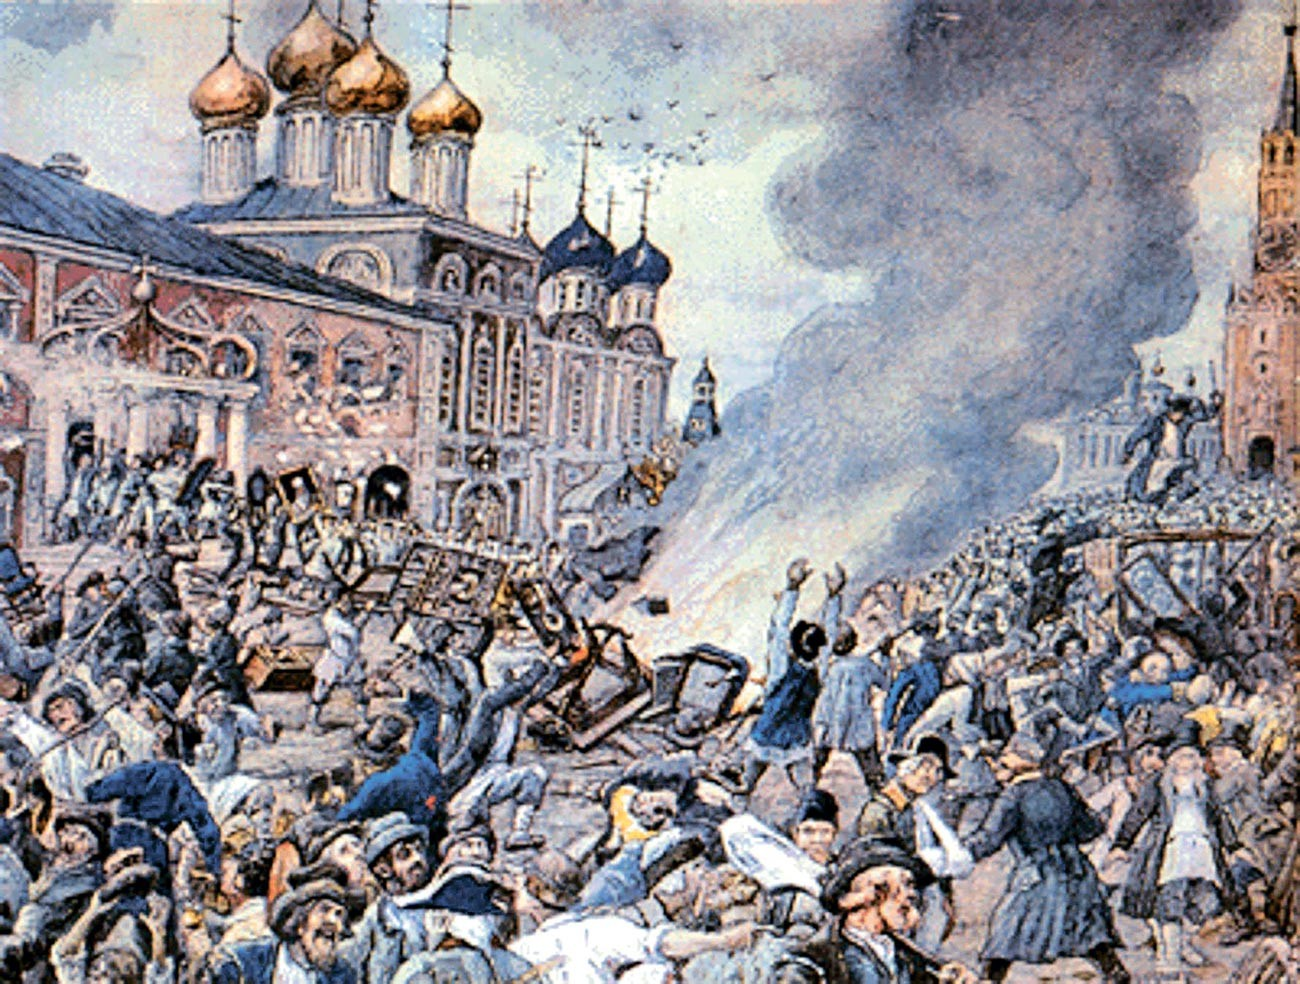 Plague Riot in Moscow in 1771, a 1930s watercolor by E. Lissner